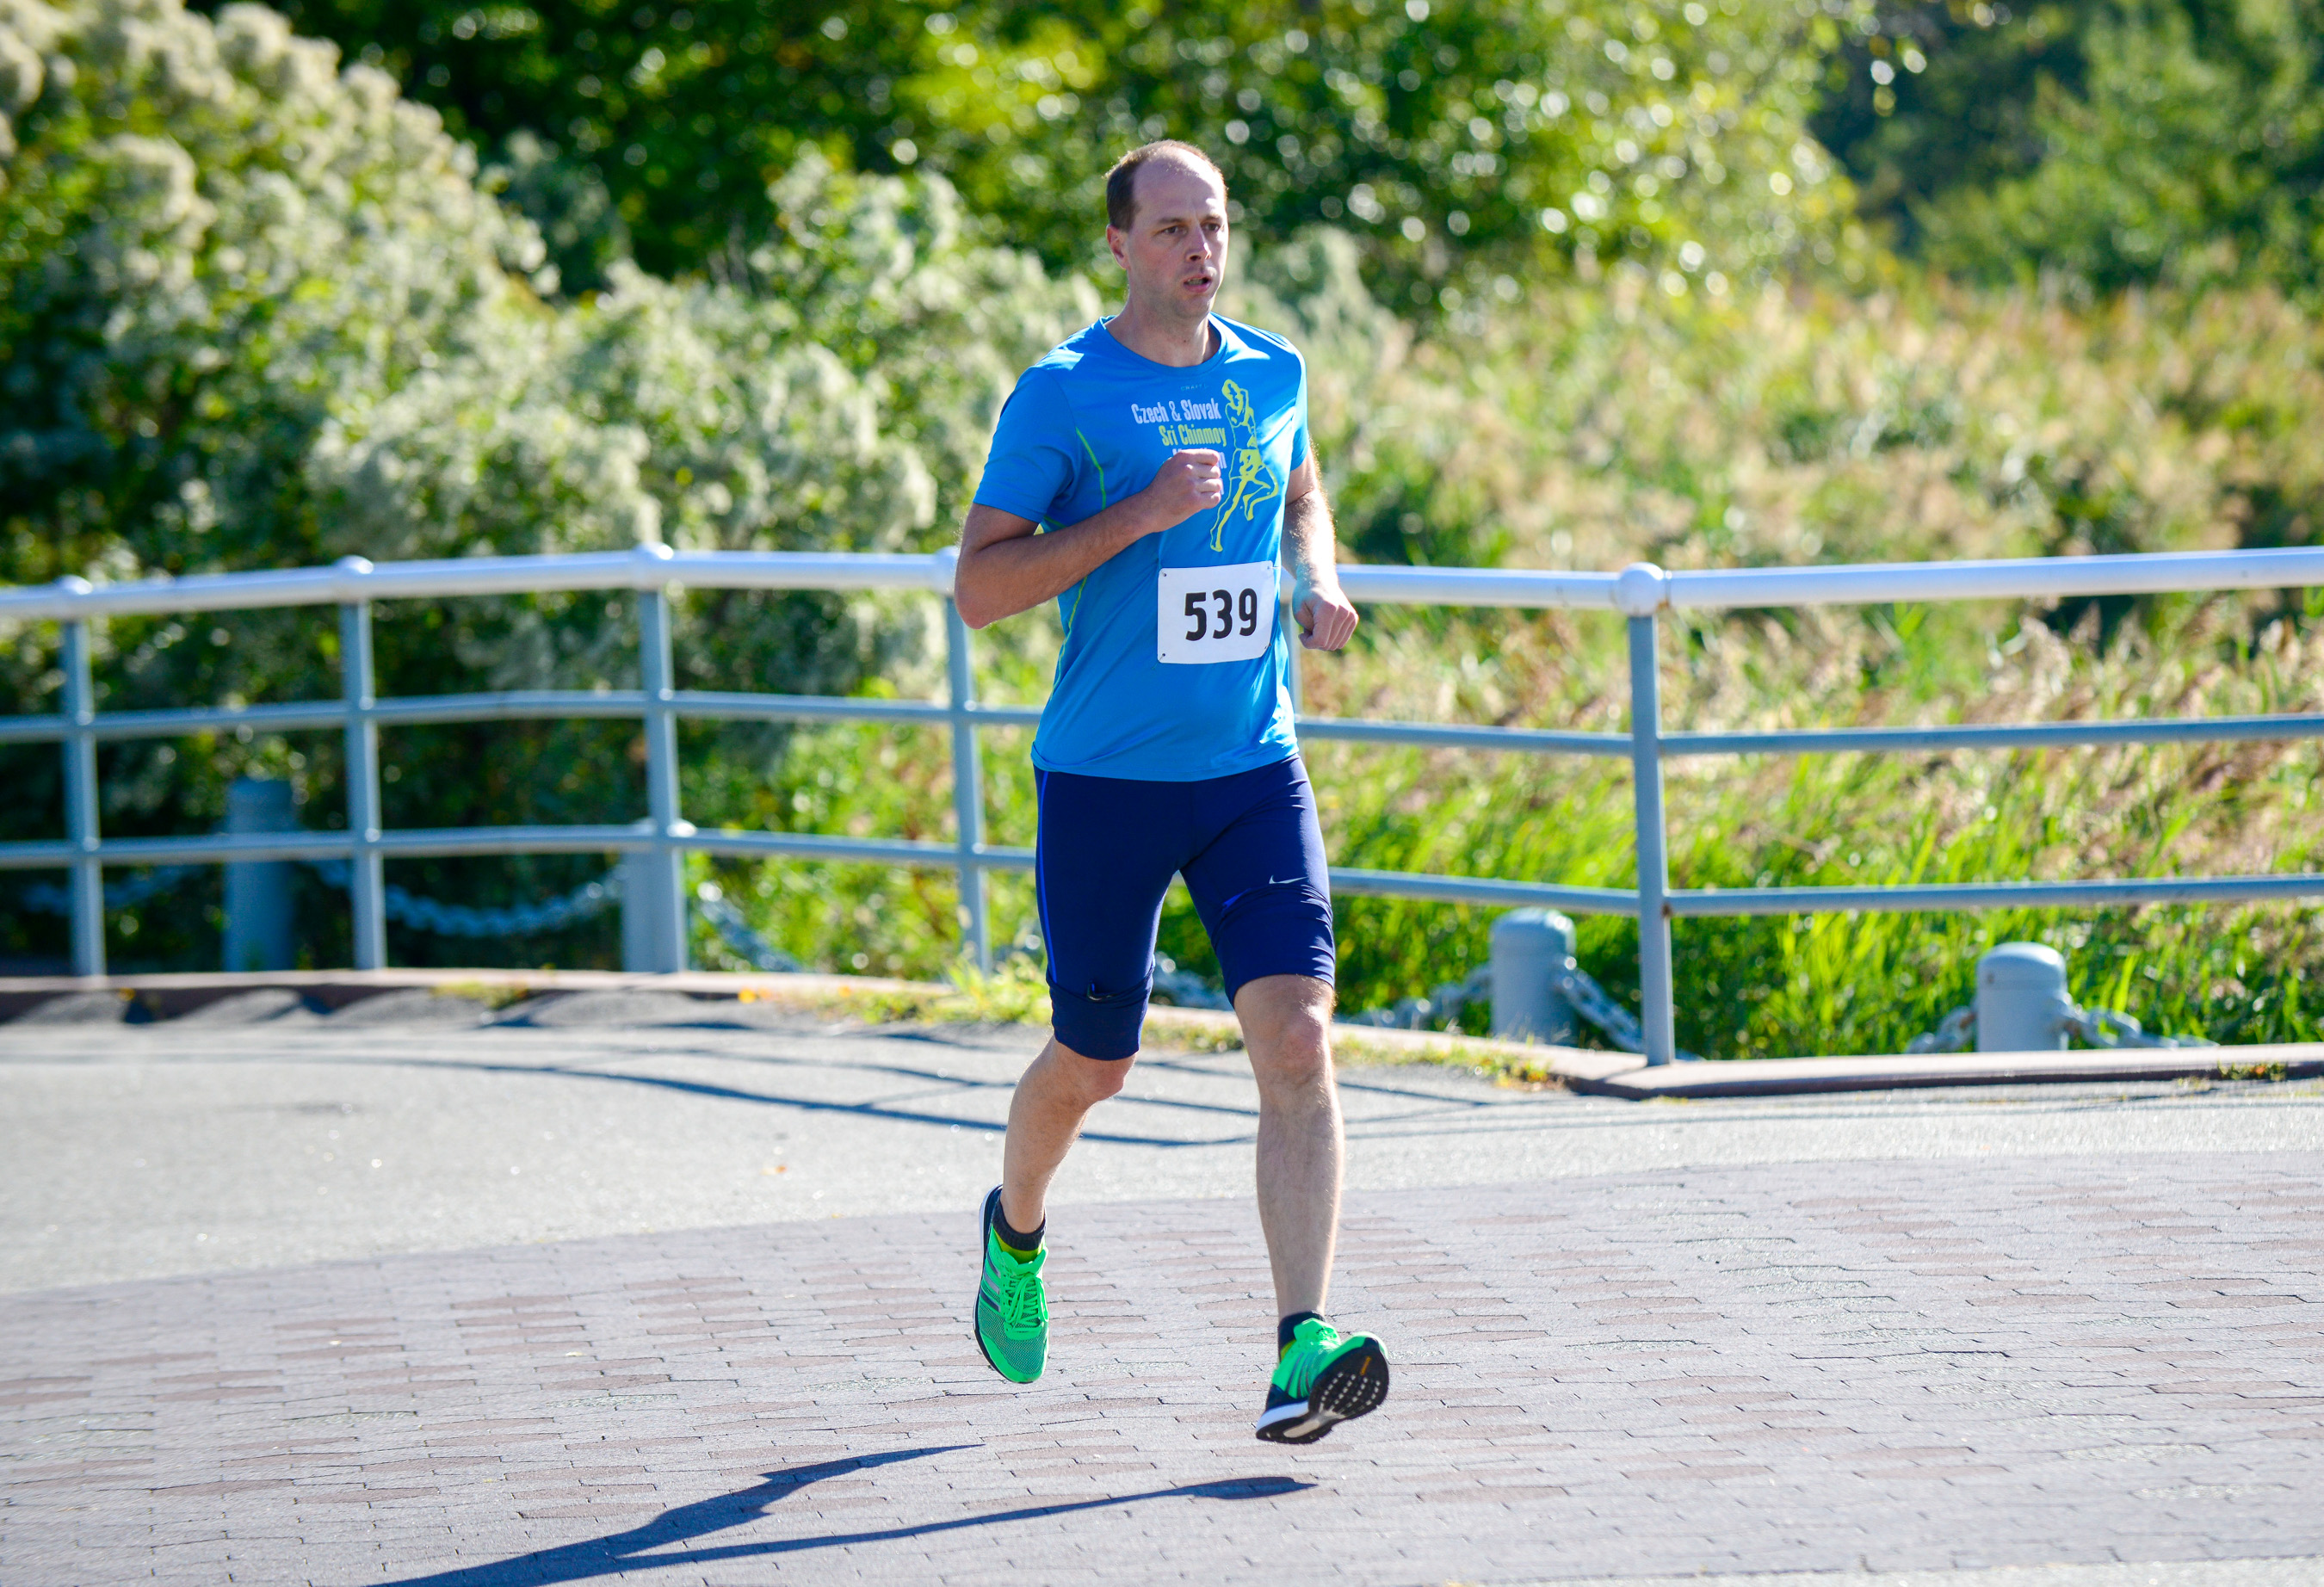 2 Mile Race at the Sri Chinmoy Heart Garden